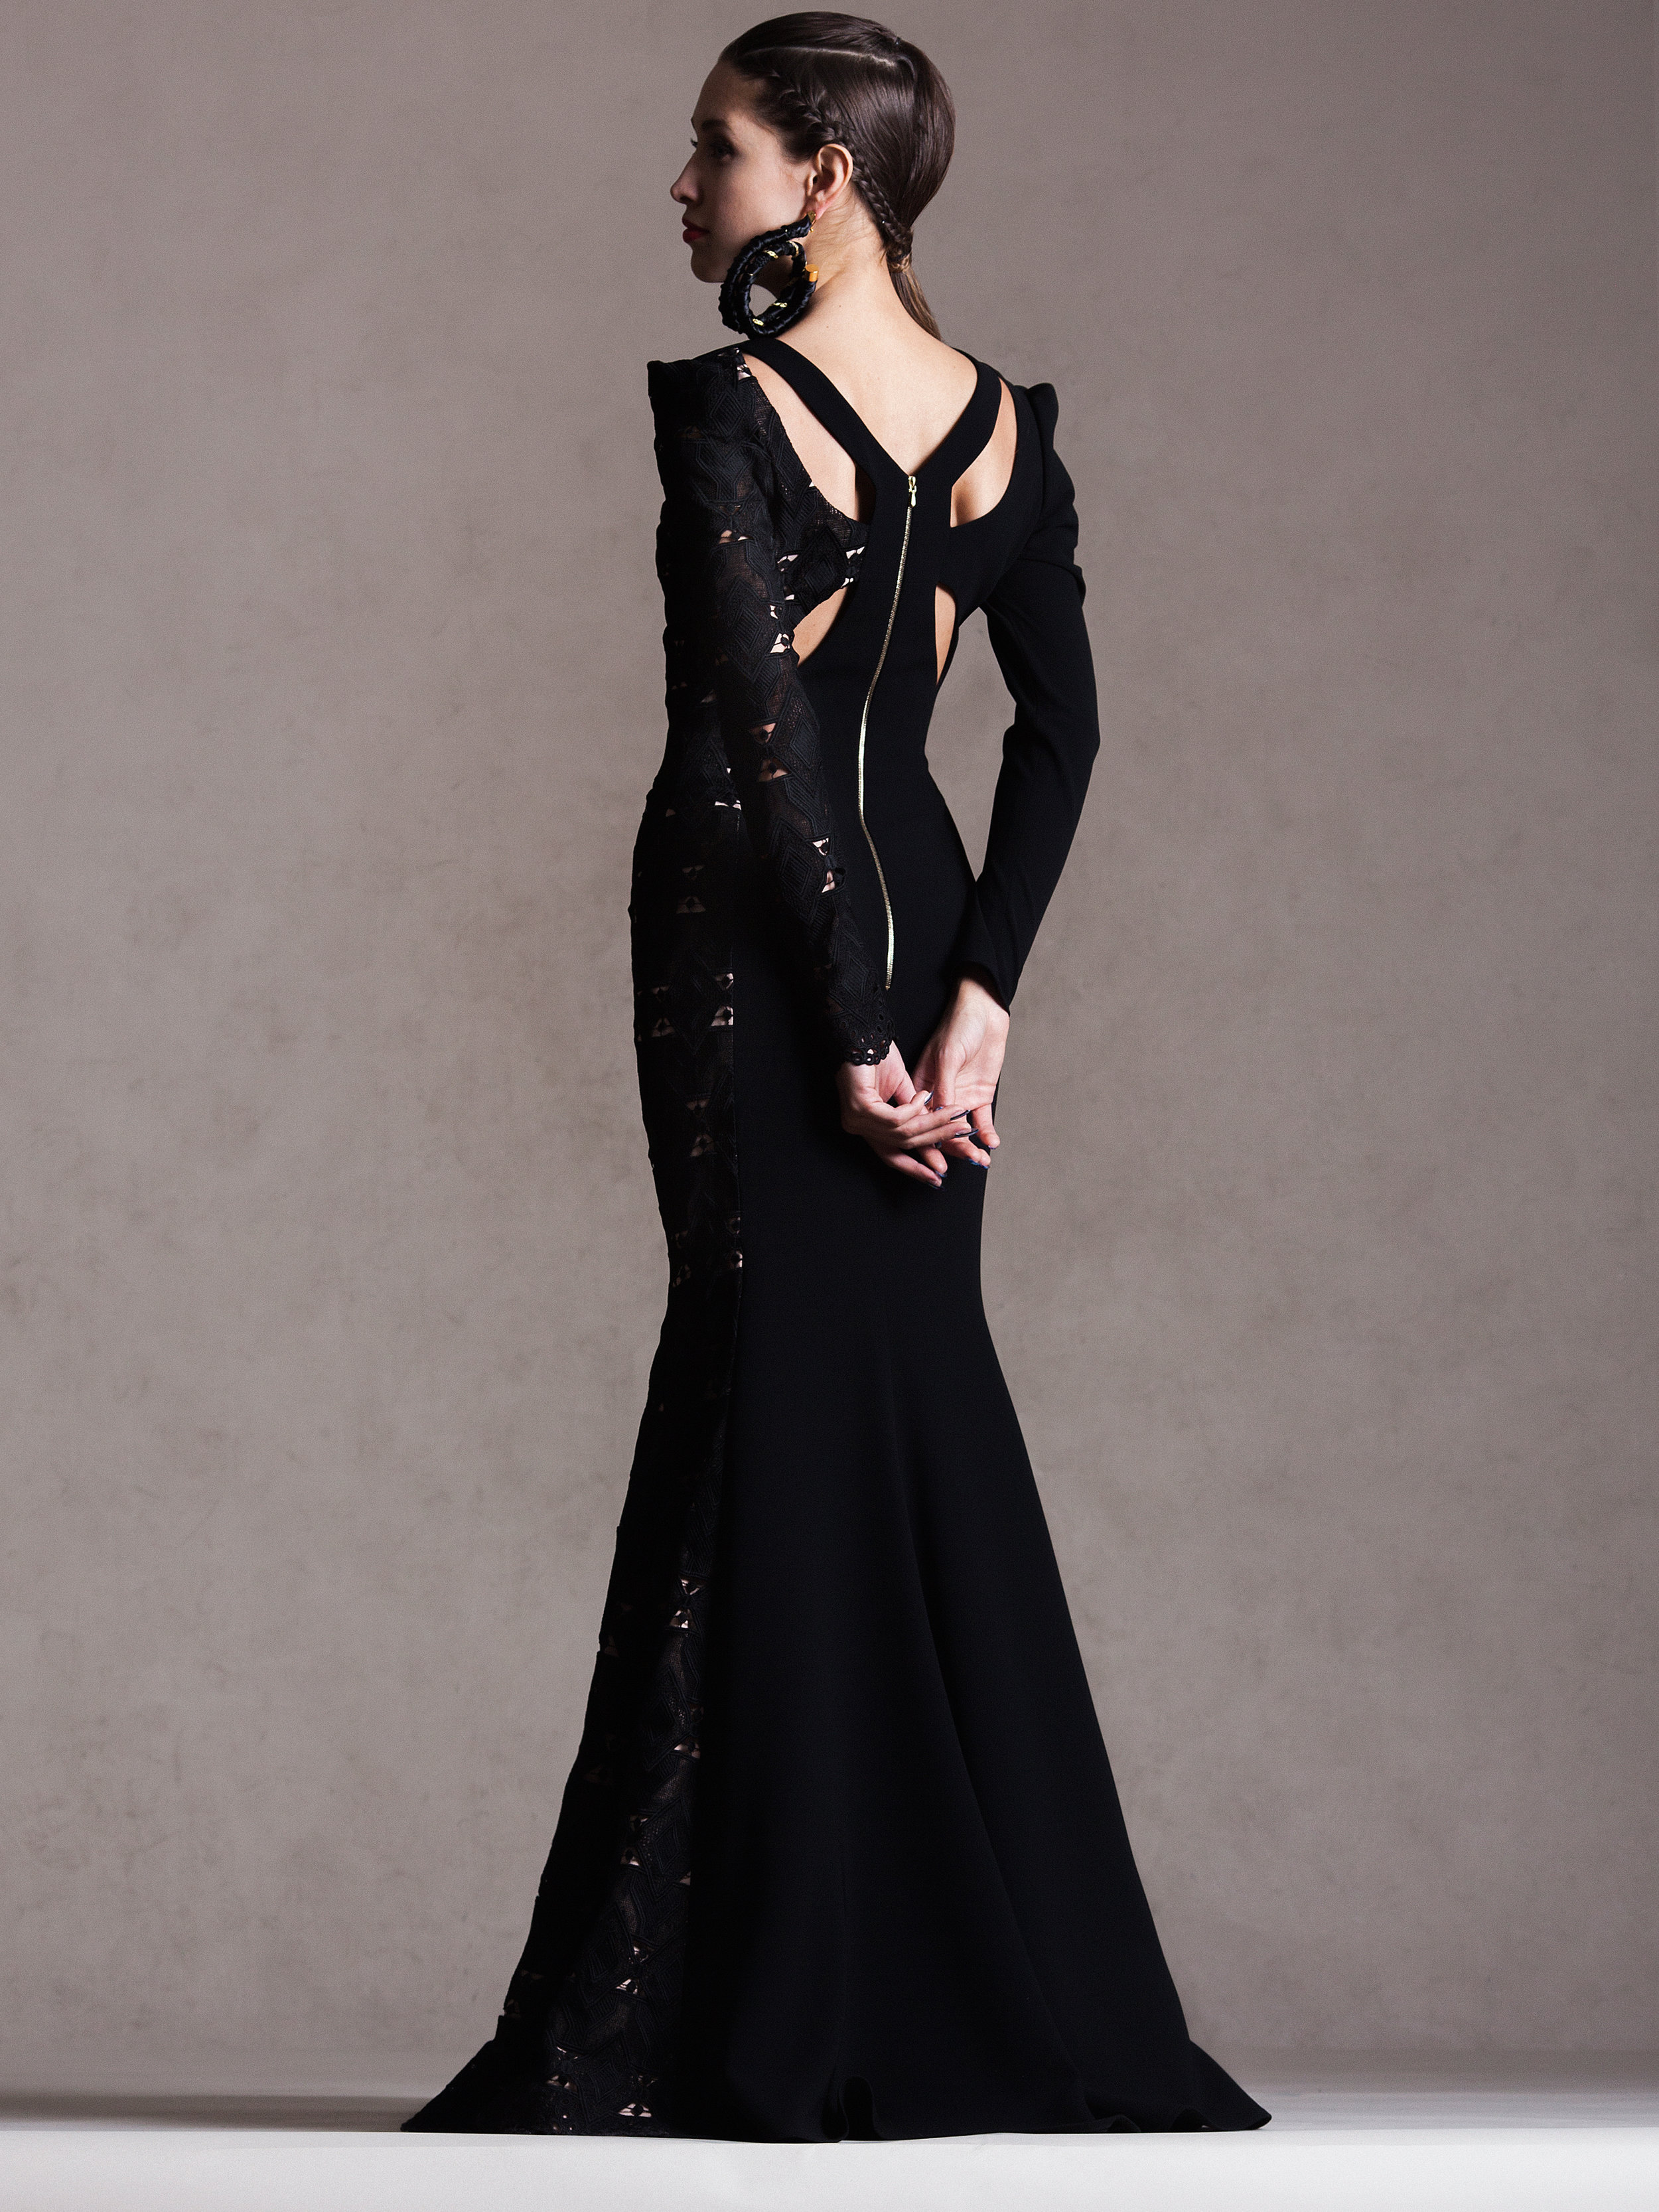 Lucian-Matis-Lookbook-20150204-023c.jpg